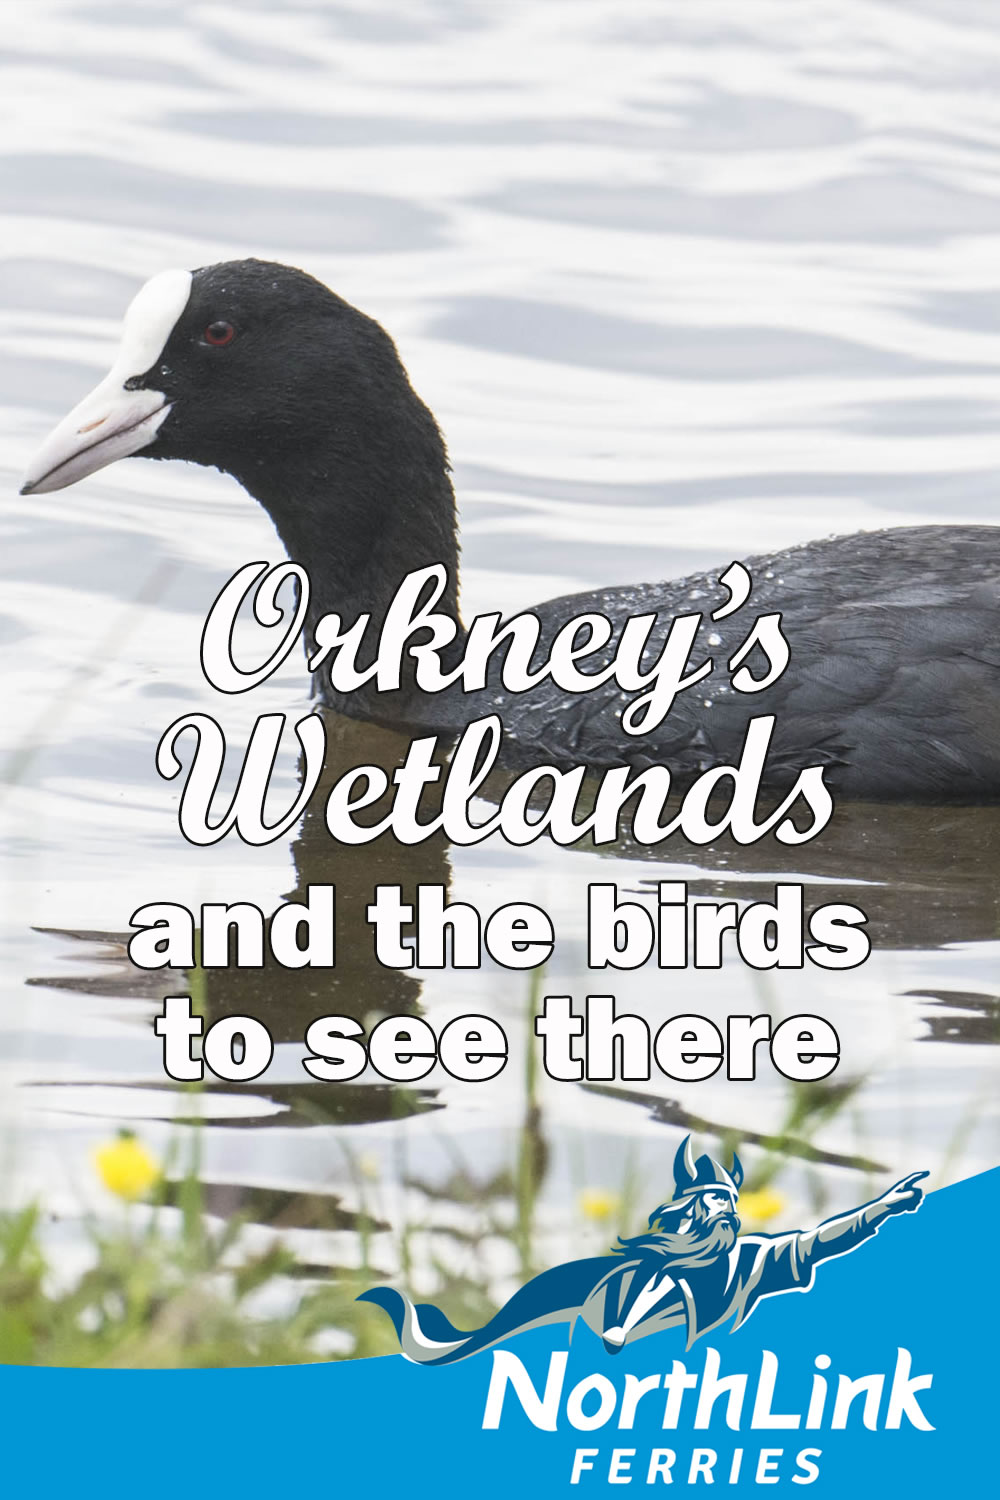 Orkney's wetlands and the birds there